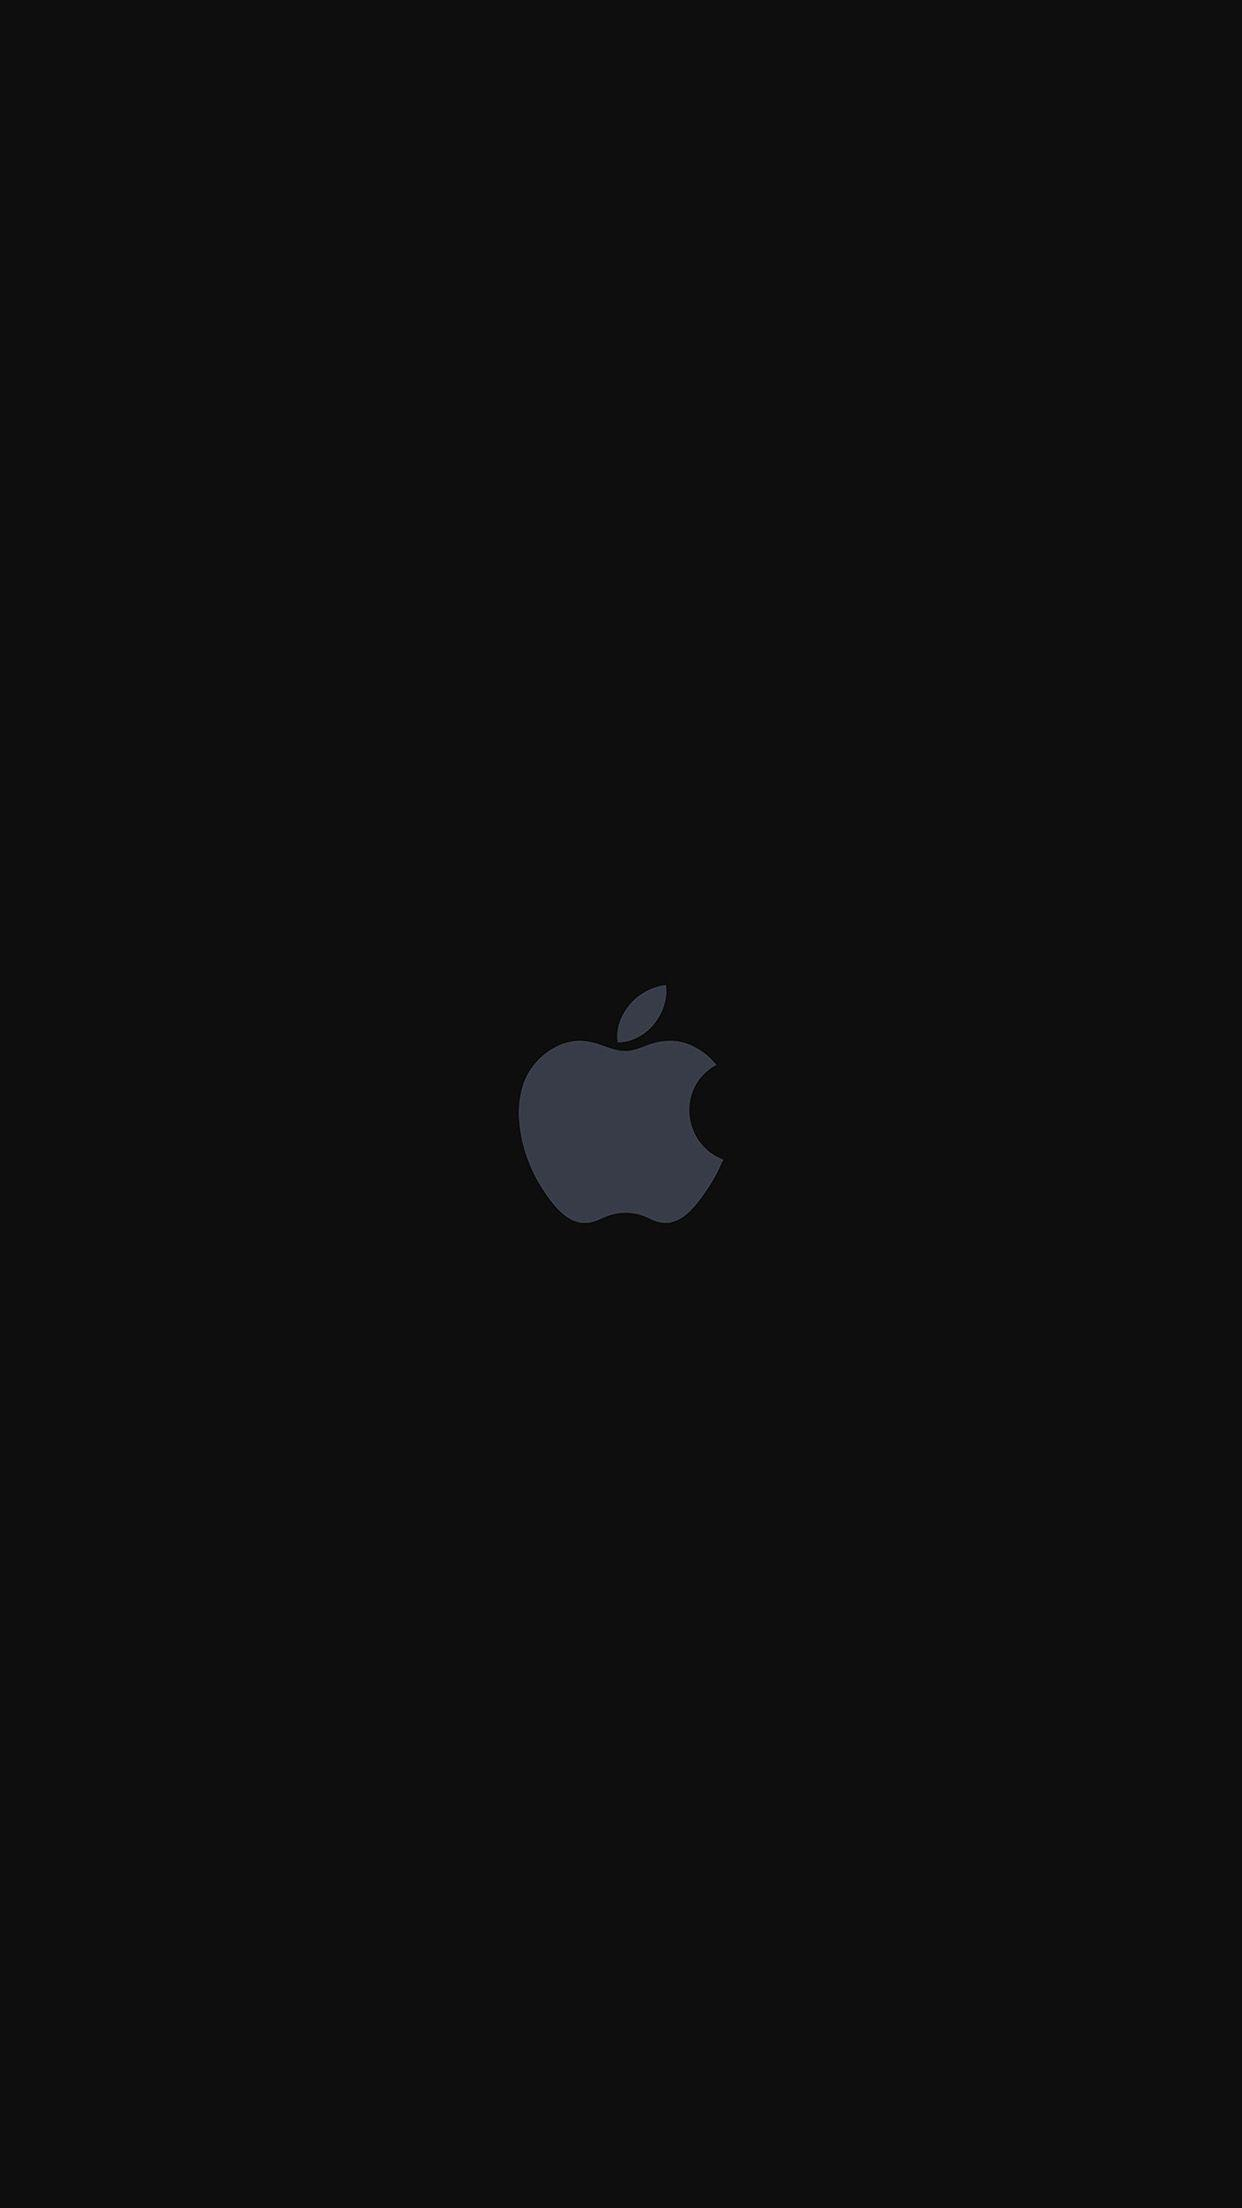 Wallpapers: Apple Store Dubai Mall